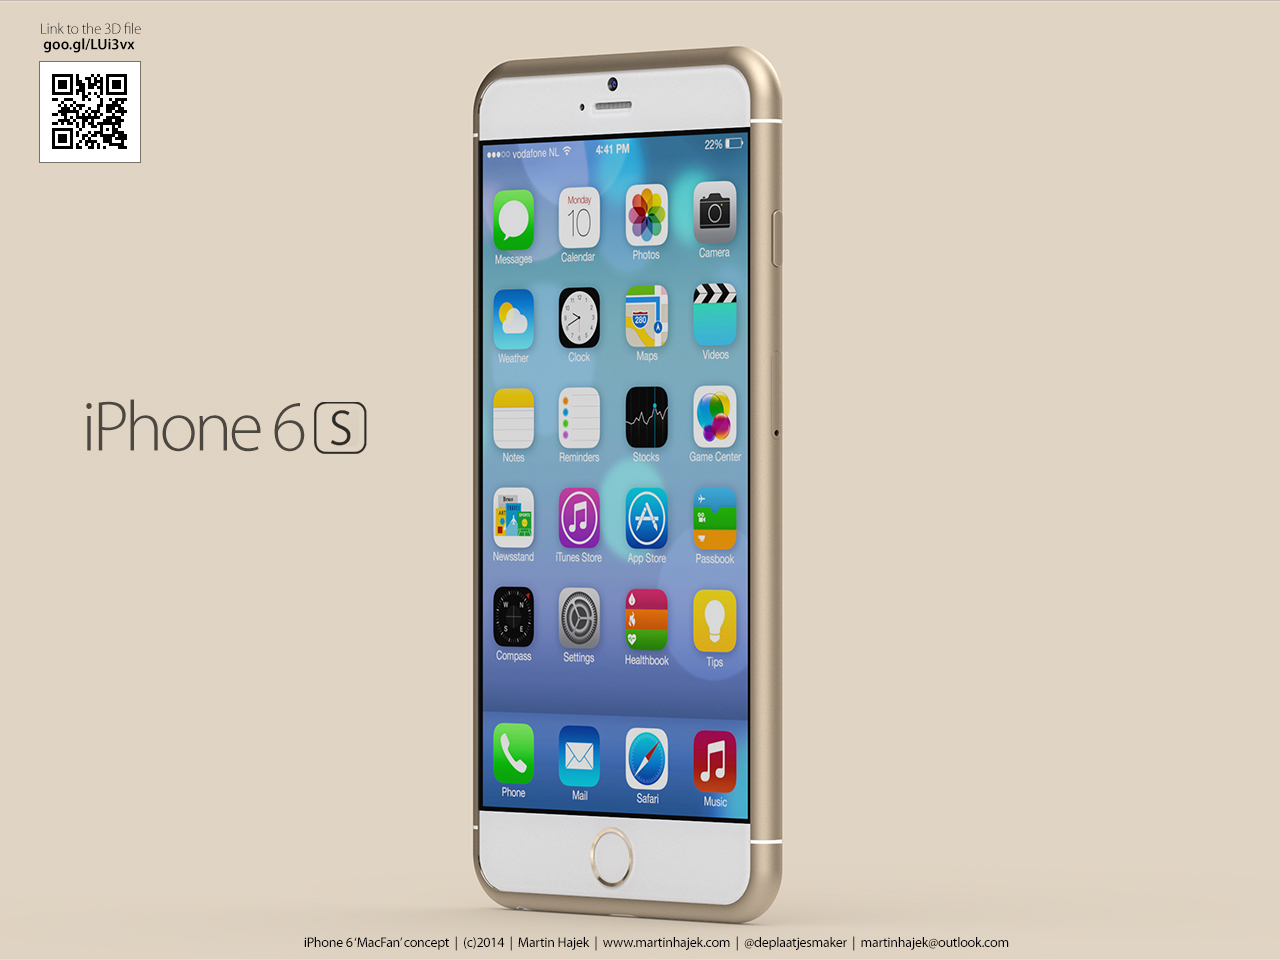 What Would An iPhone 6s And iPhone 6c Look Like?